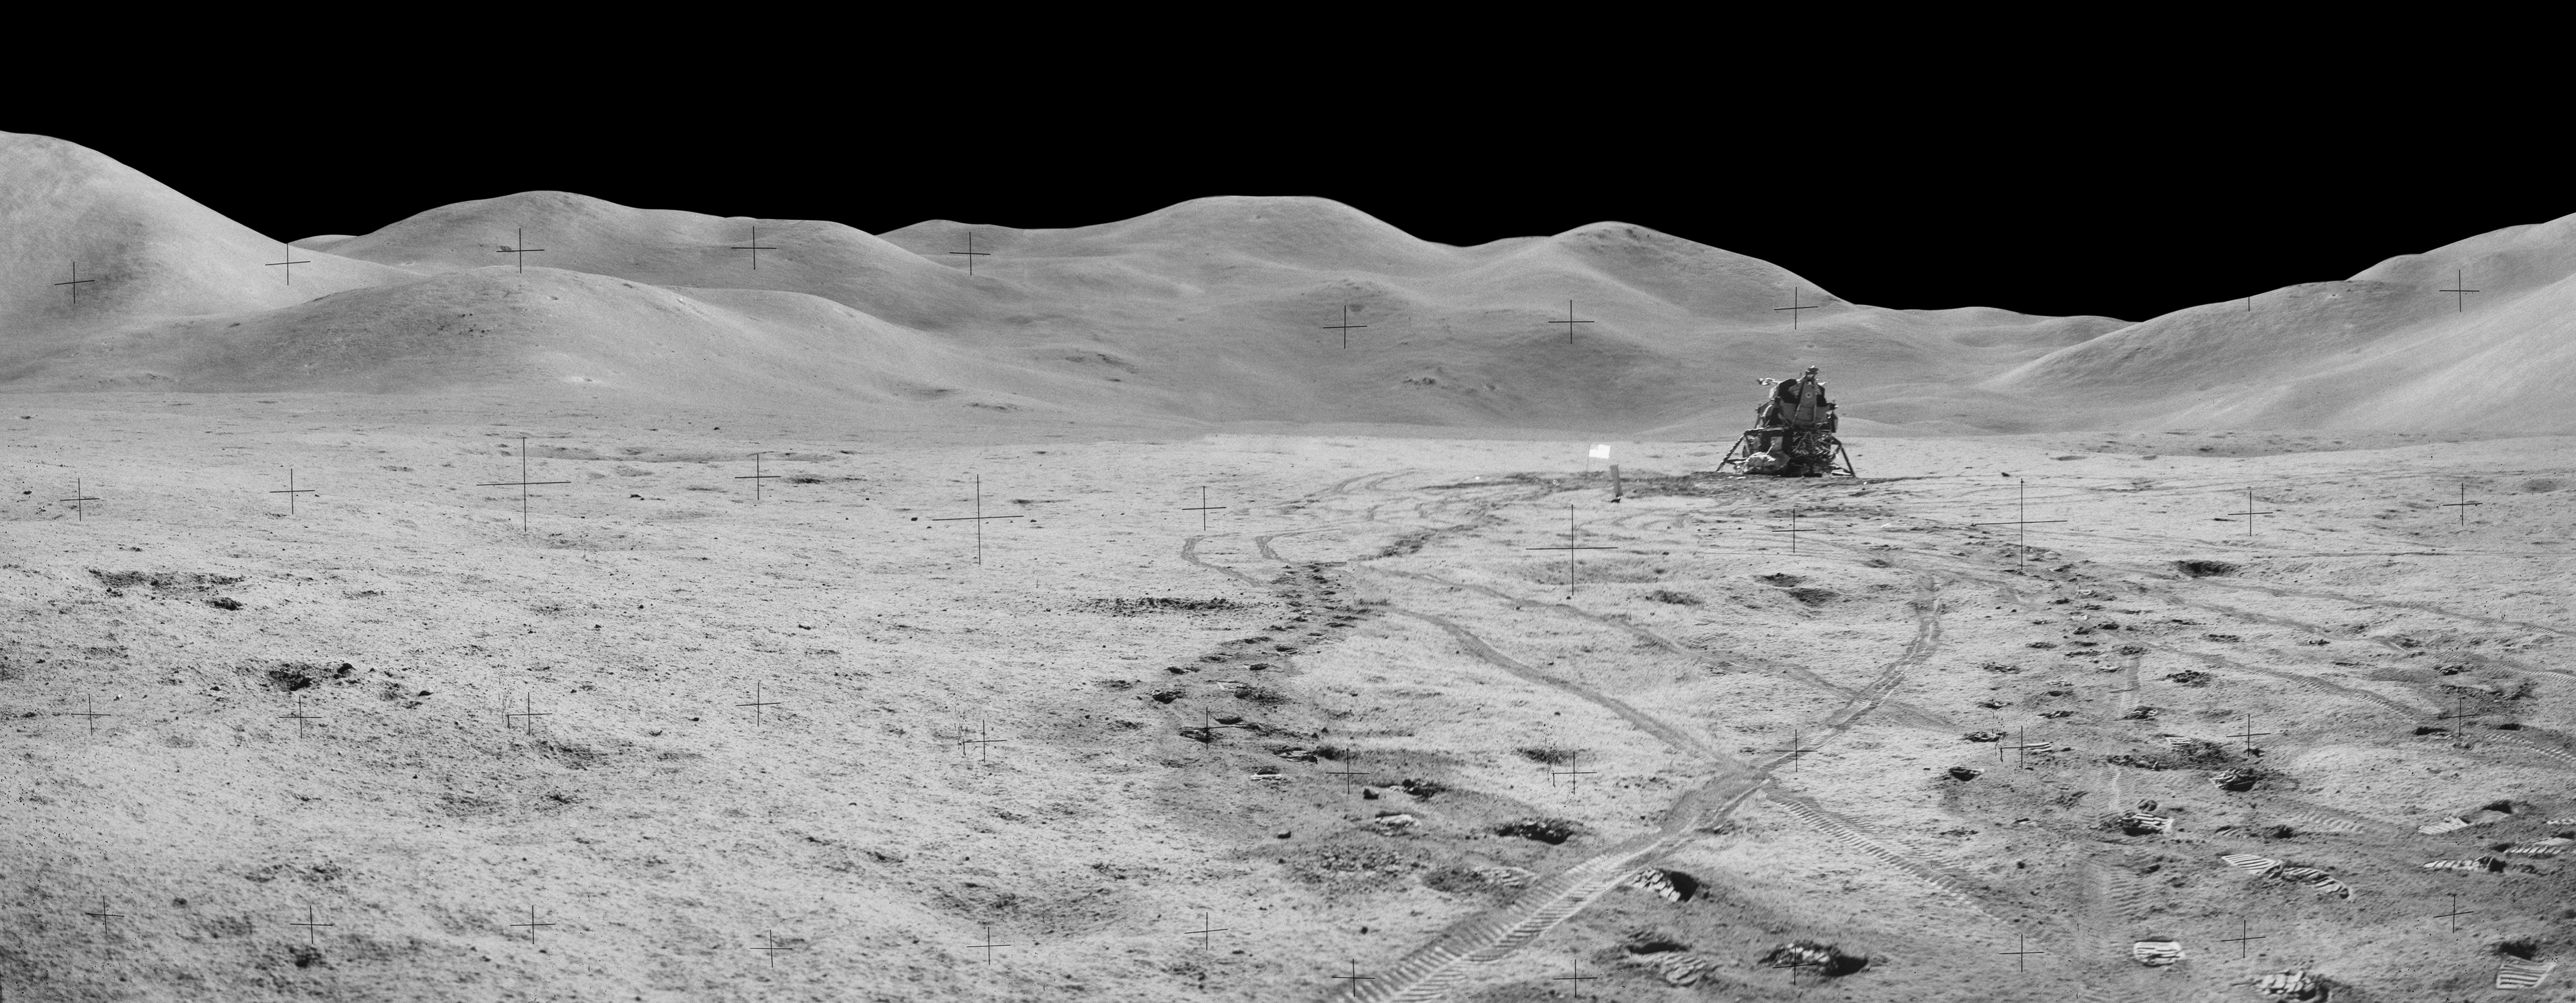 The leaning Falcon rests on on the lunar surface. Irwin took this photo at the start of the third EVA. Credit: NASA via Retro Space Images